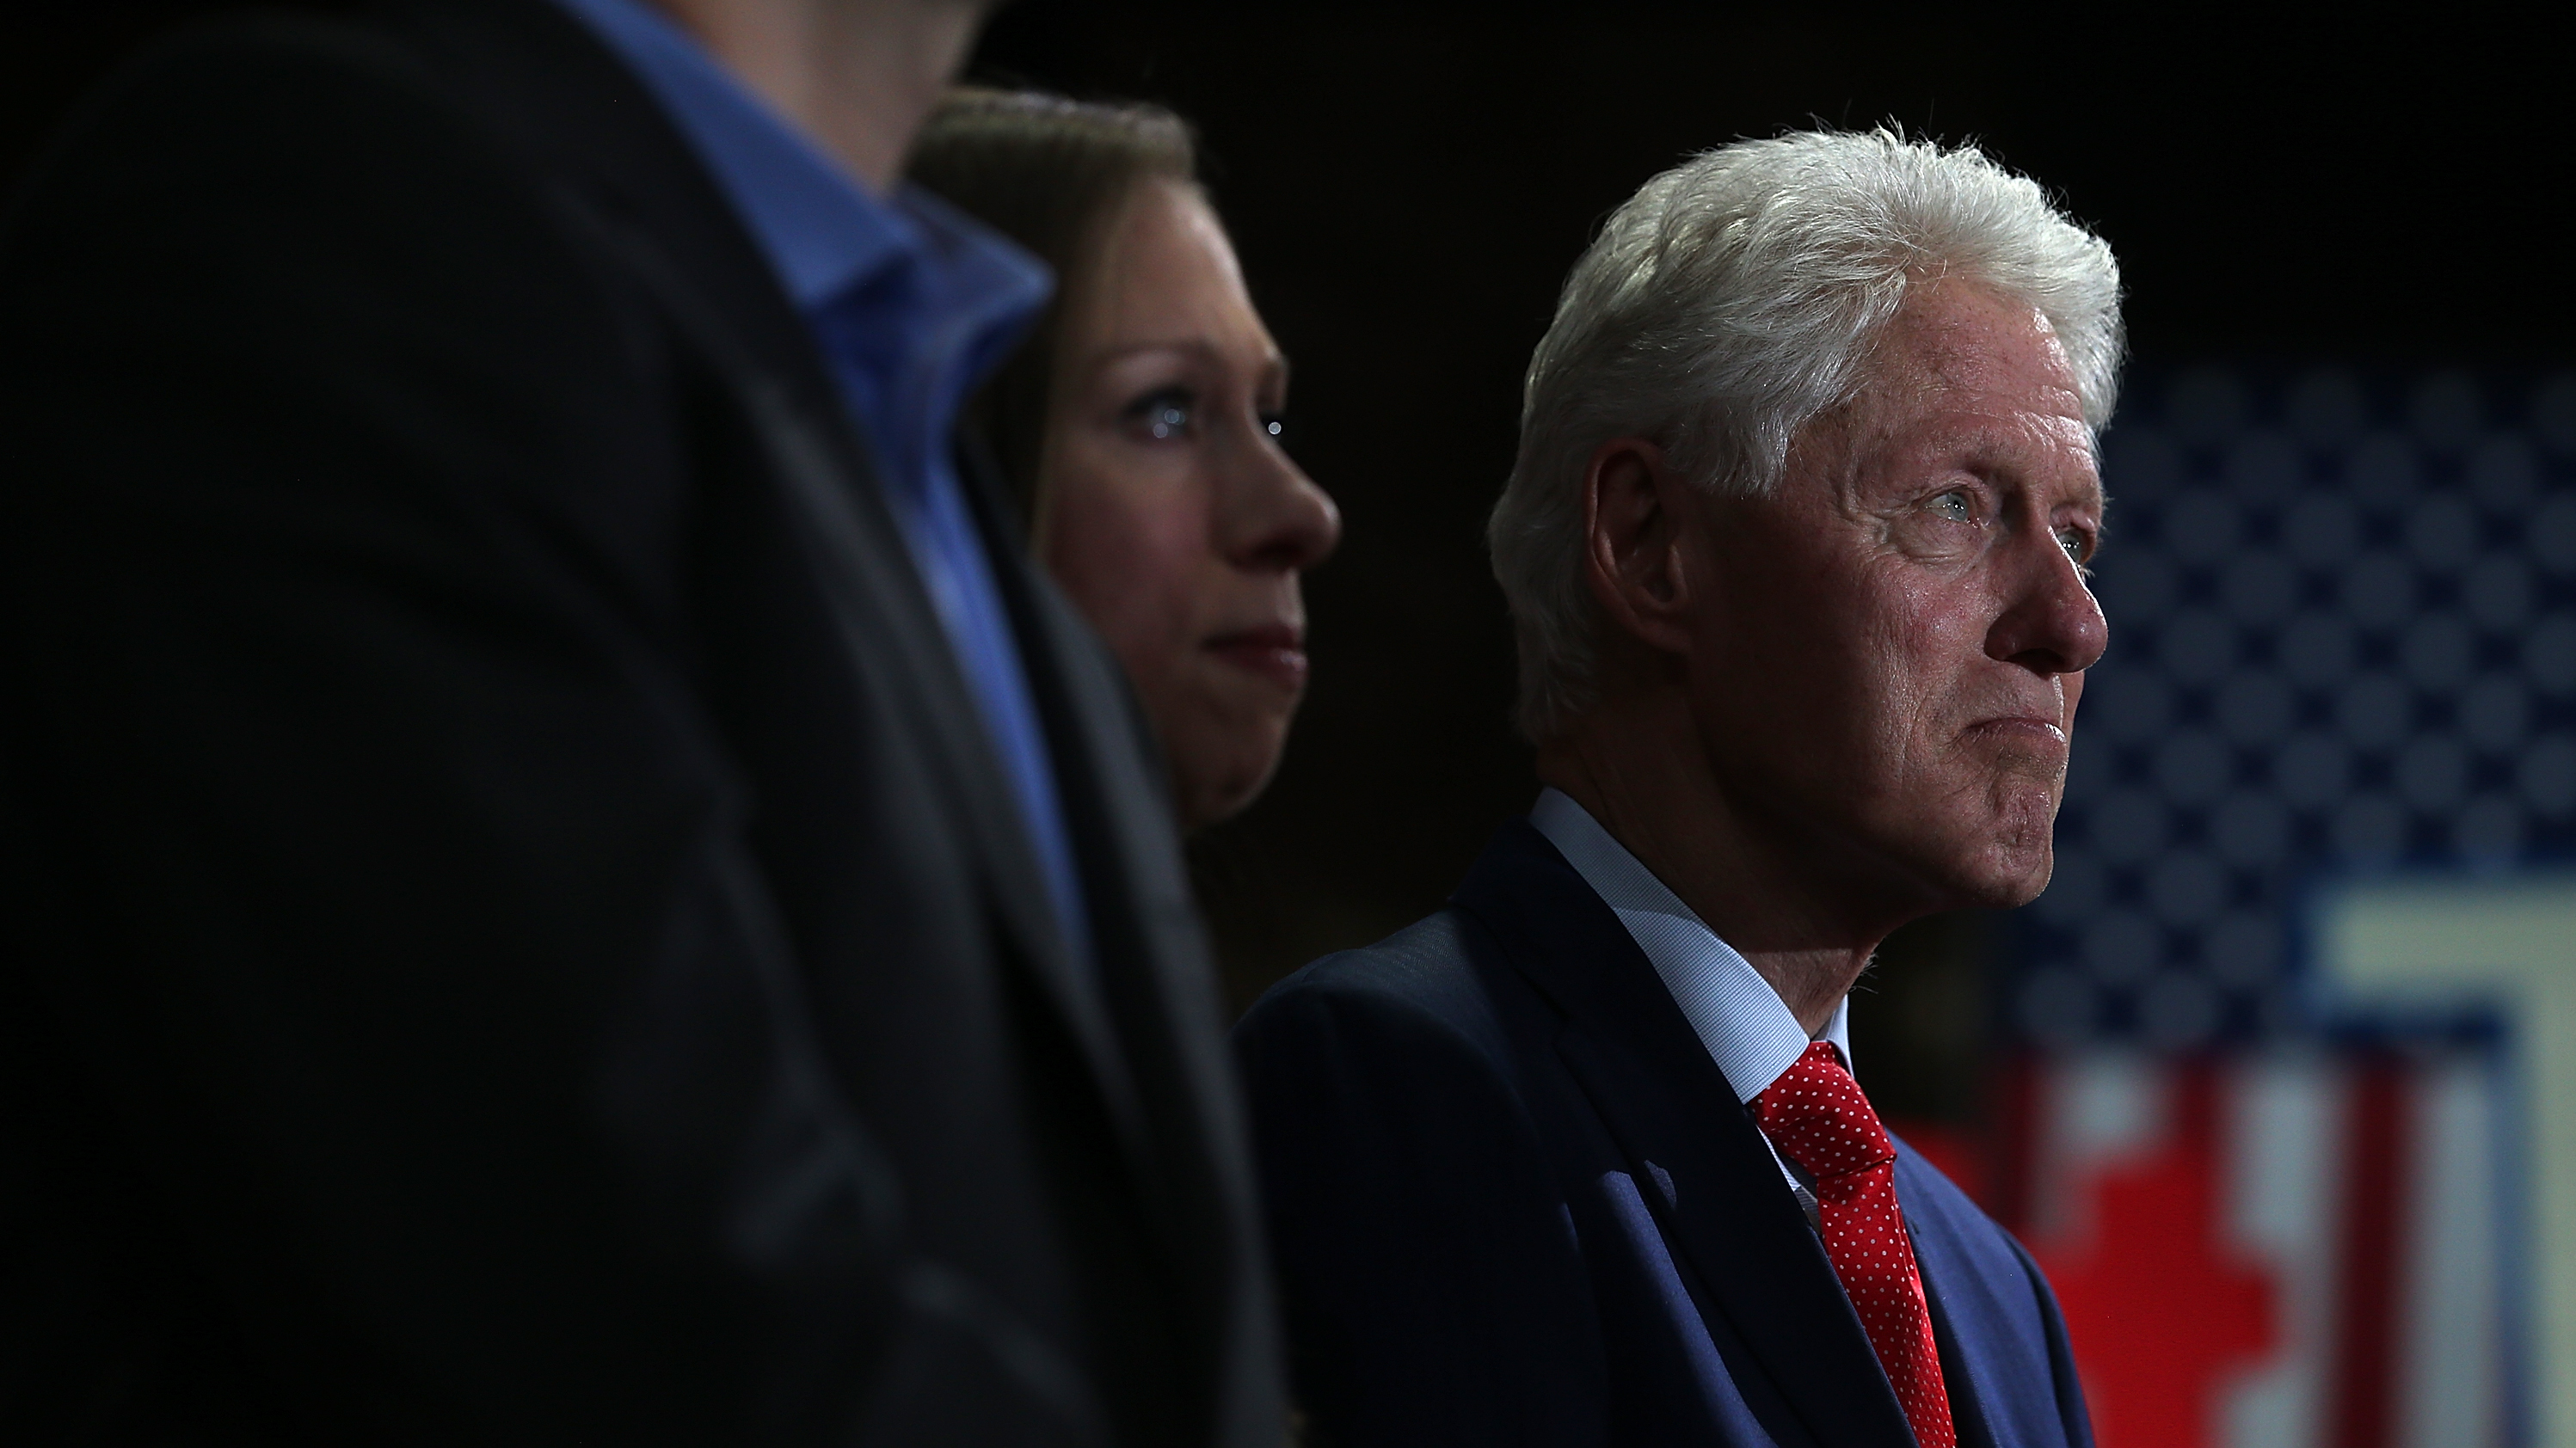 Former president Bill Clinton and his daughter, Chelsea Clinton, watch Hillary Clinton speak during a primary election night gathering April 19 in New York City. (Photo by Justin Sullivan/Getty Images)